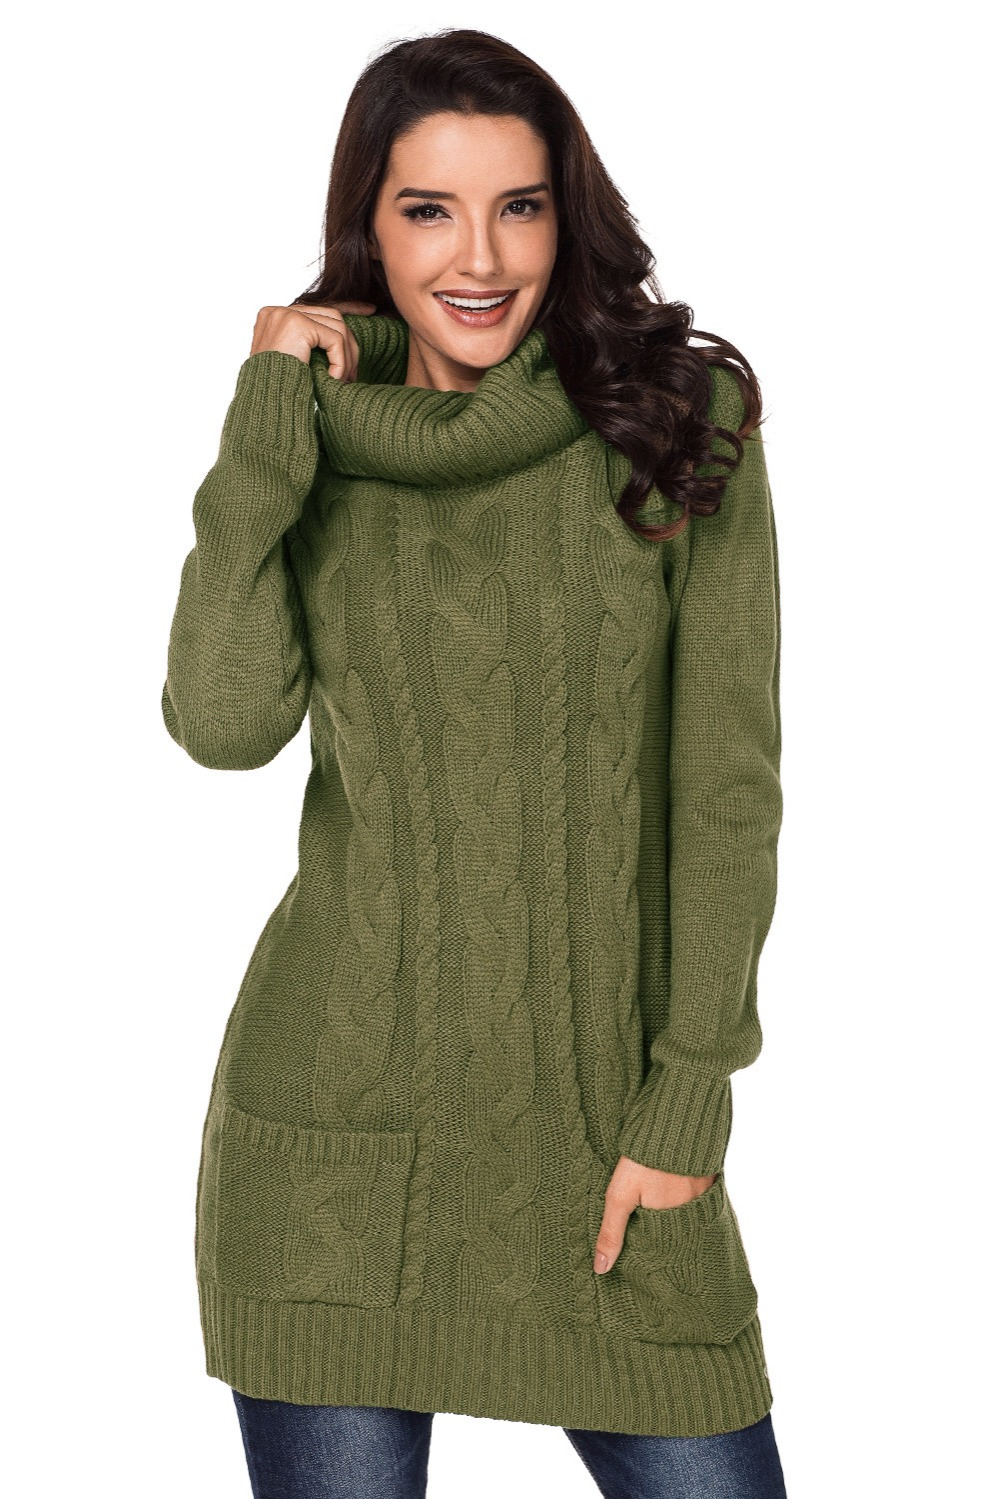 Olive-Cowl-Neck-Cable-Knit-Sweater-Dress-LC27836-9-5